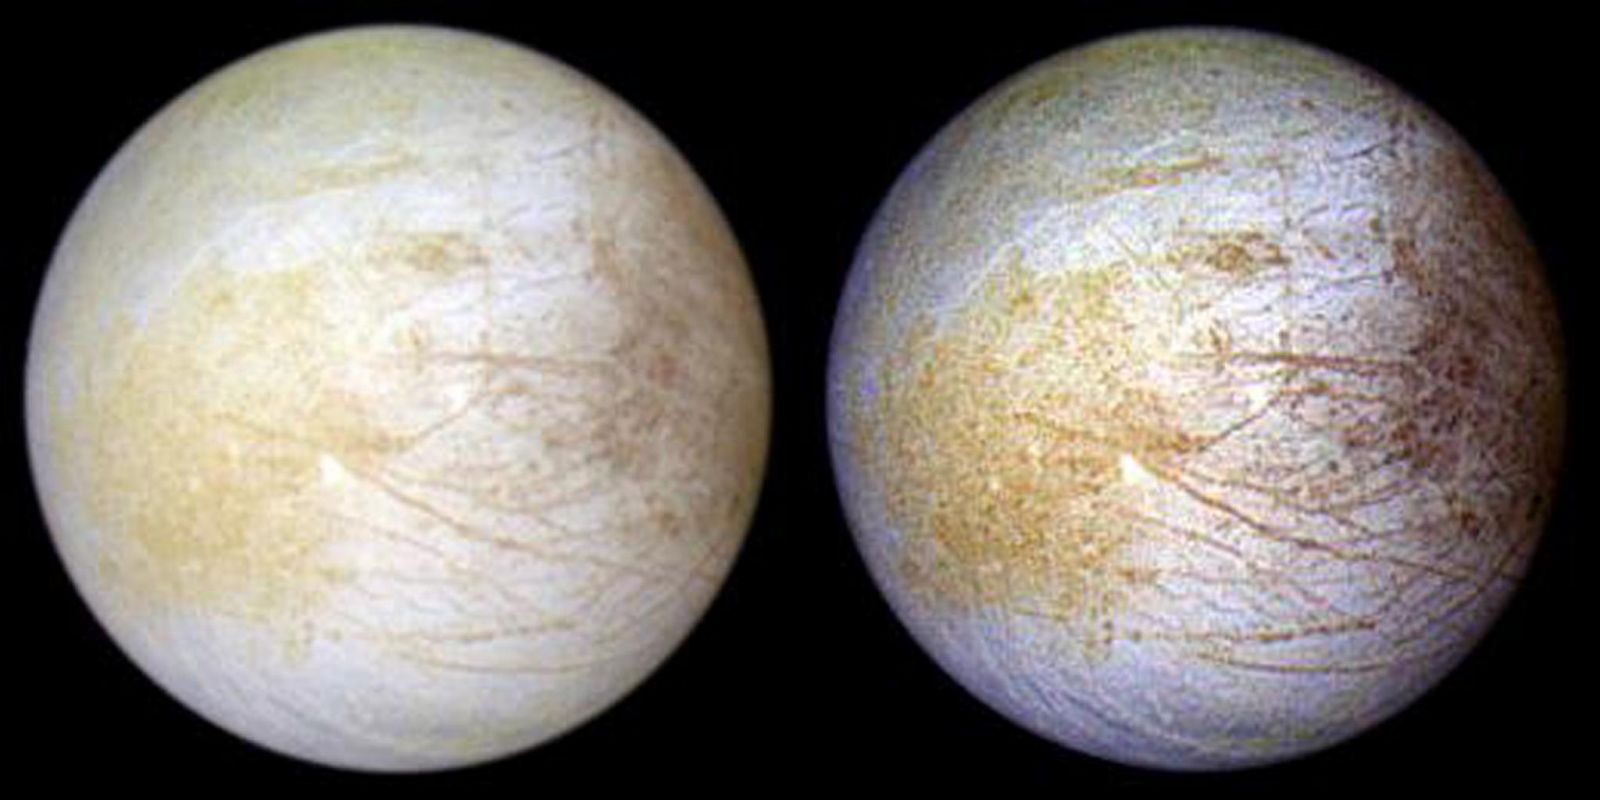 The Galileo spacecraft helped produce this image of Europa. While the picture on the left shows the natural colors of the moon, the one on the right highlights the yellow regions where the salt was discovered (in the Tara Regio region). Image Credit: NASA/JPL/University of Arizona